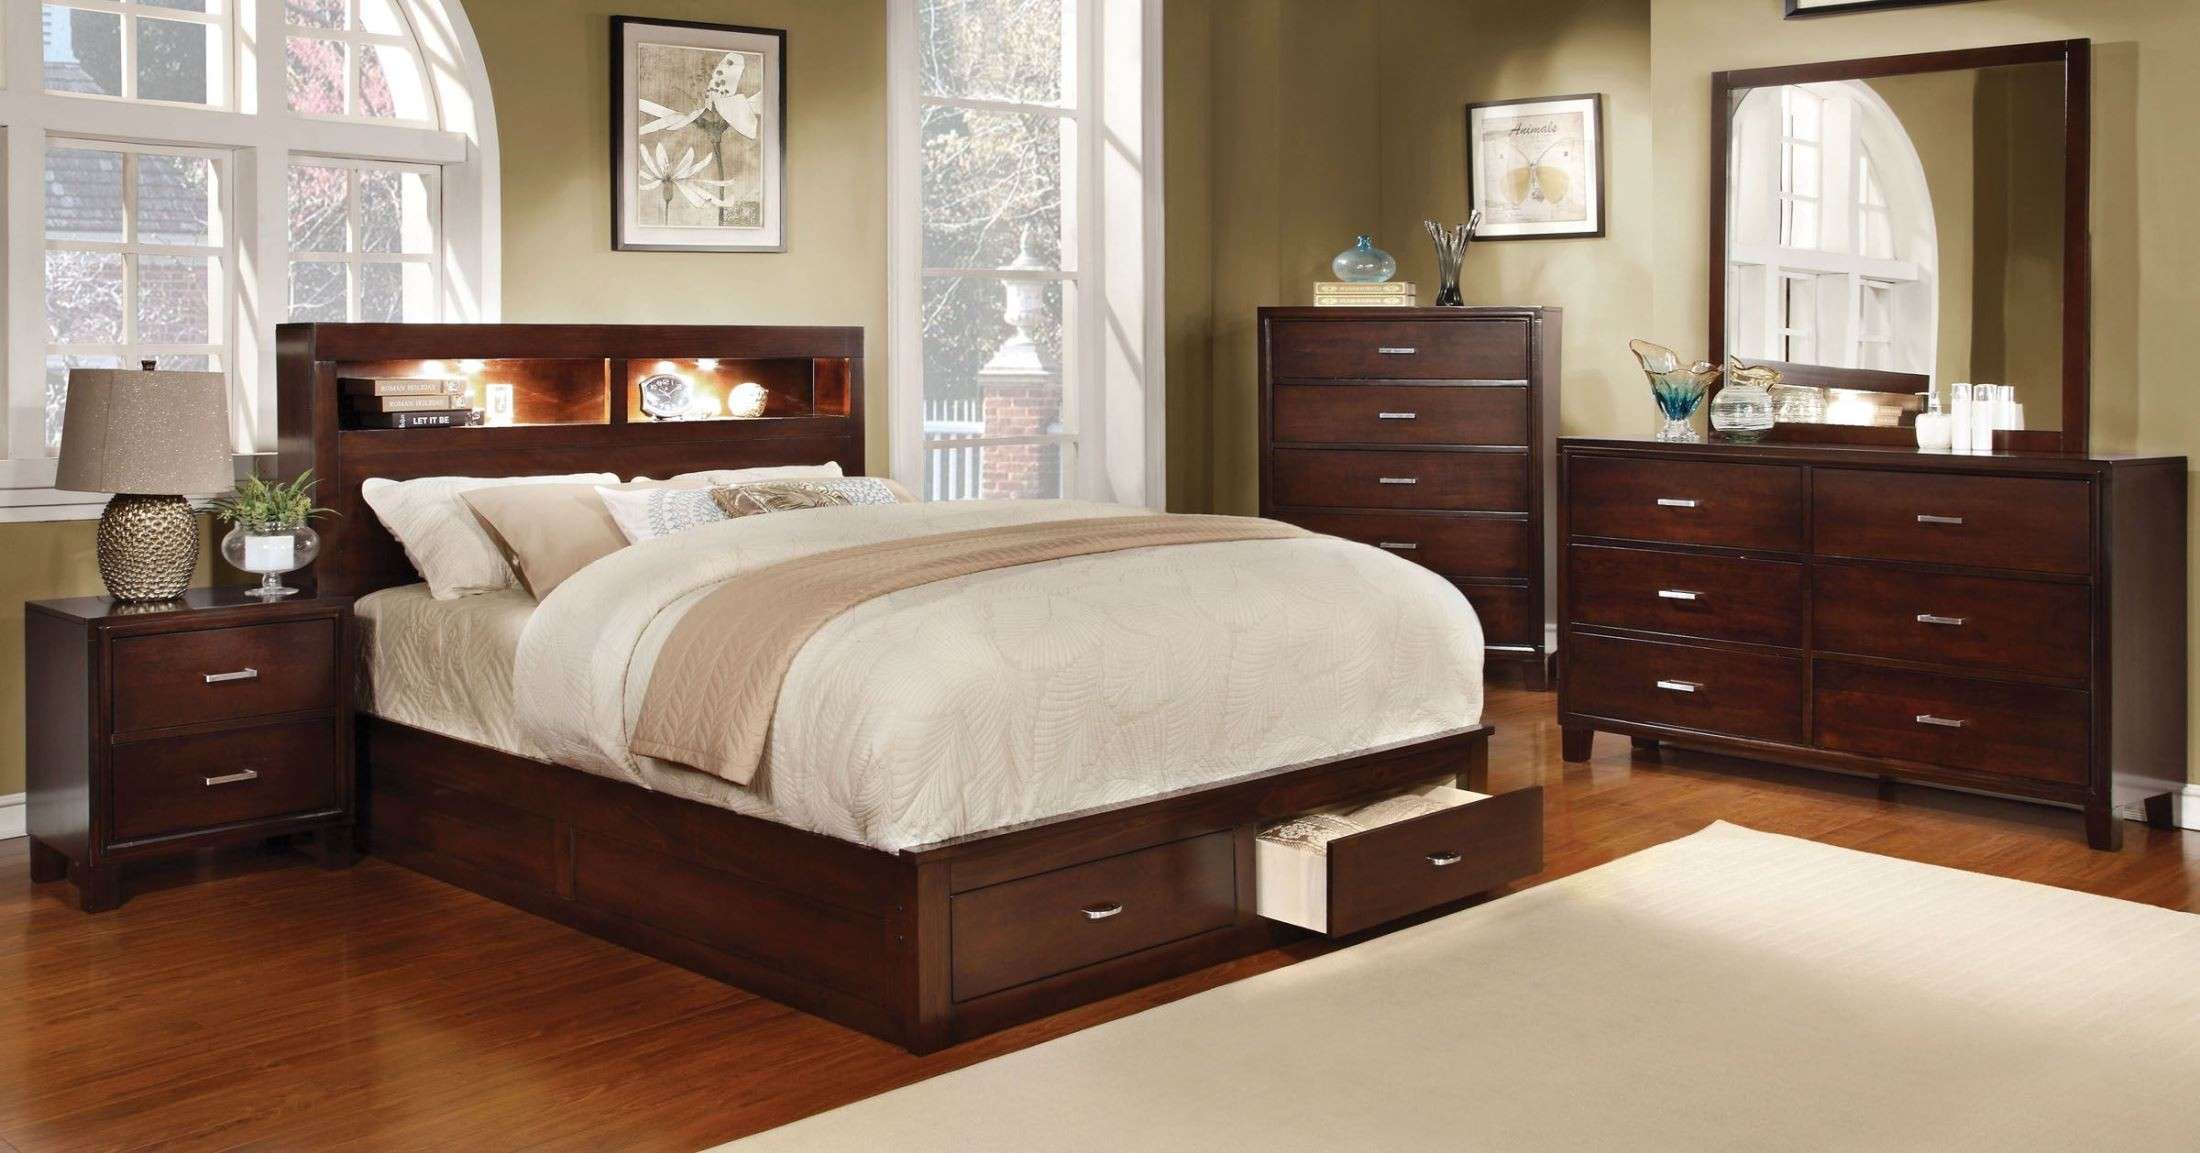 Gerico Ii Brown Cherry Storage Platform Bedroom Set From Furniture Of America Cm7291ch Q Bed